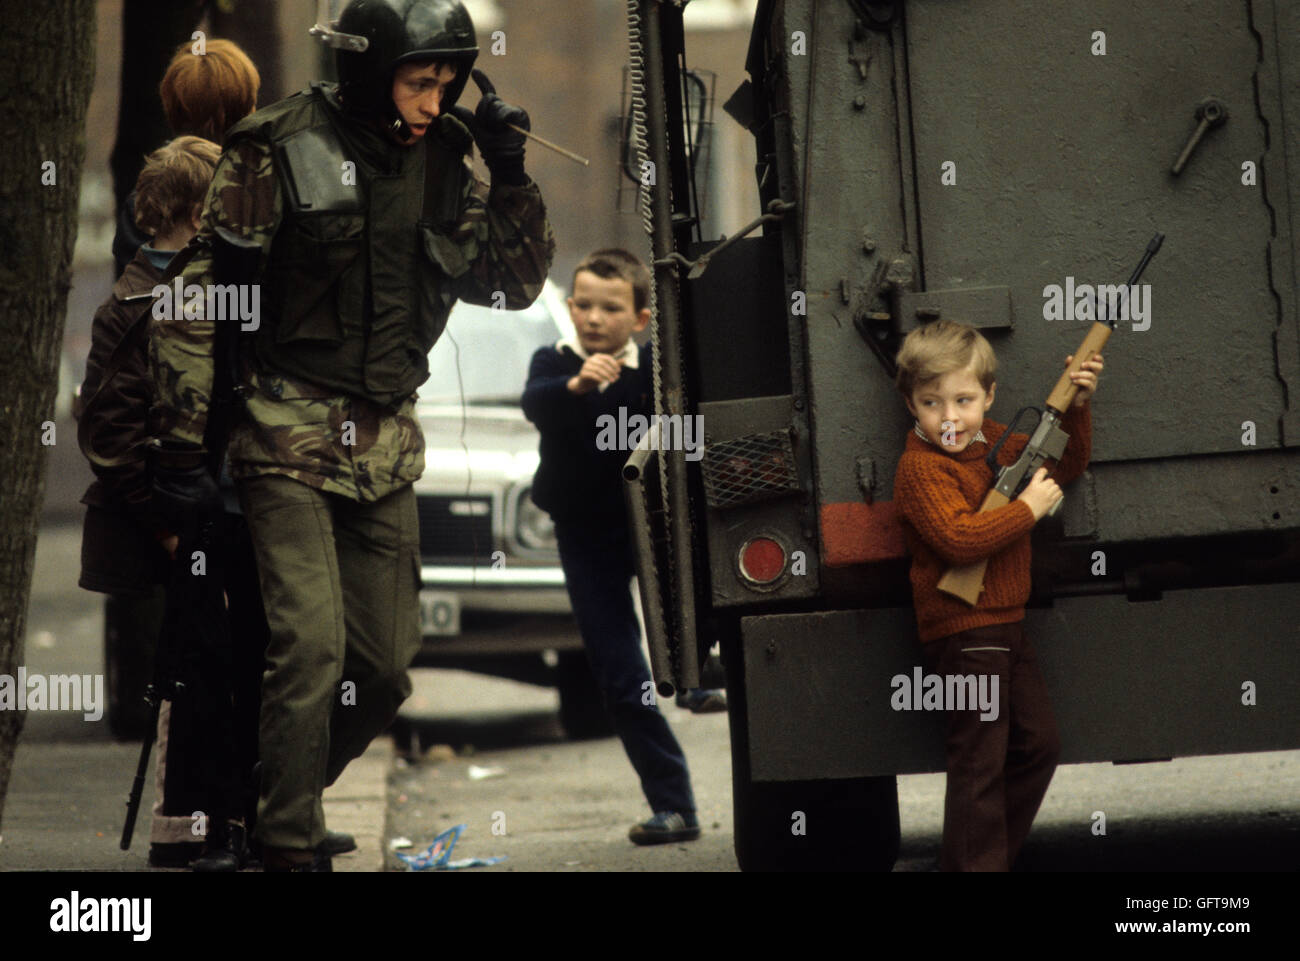 Kids children playing guns, during The Troubles Belfast Northern Ireland Conflict  1980s HOMER SYKES - Stock Image